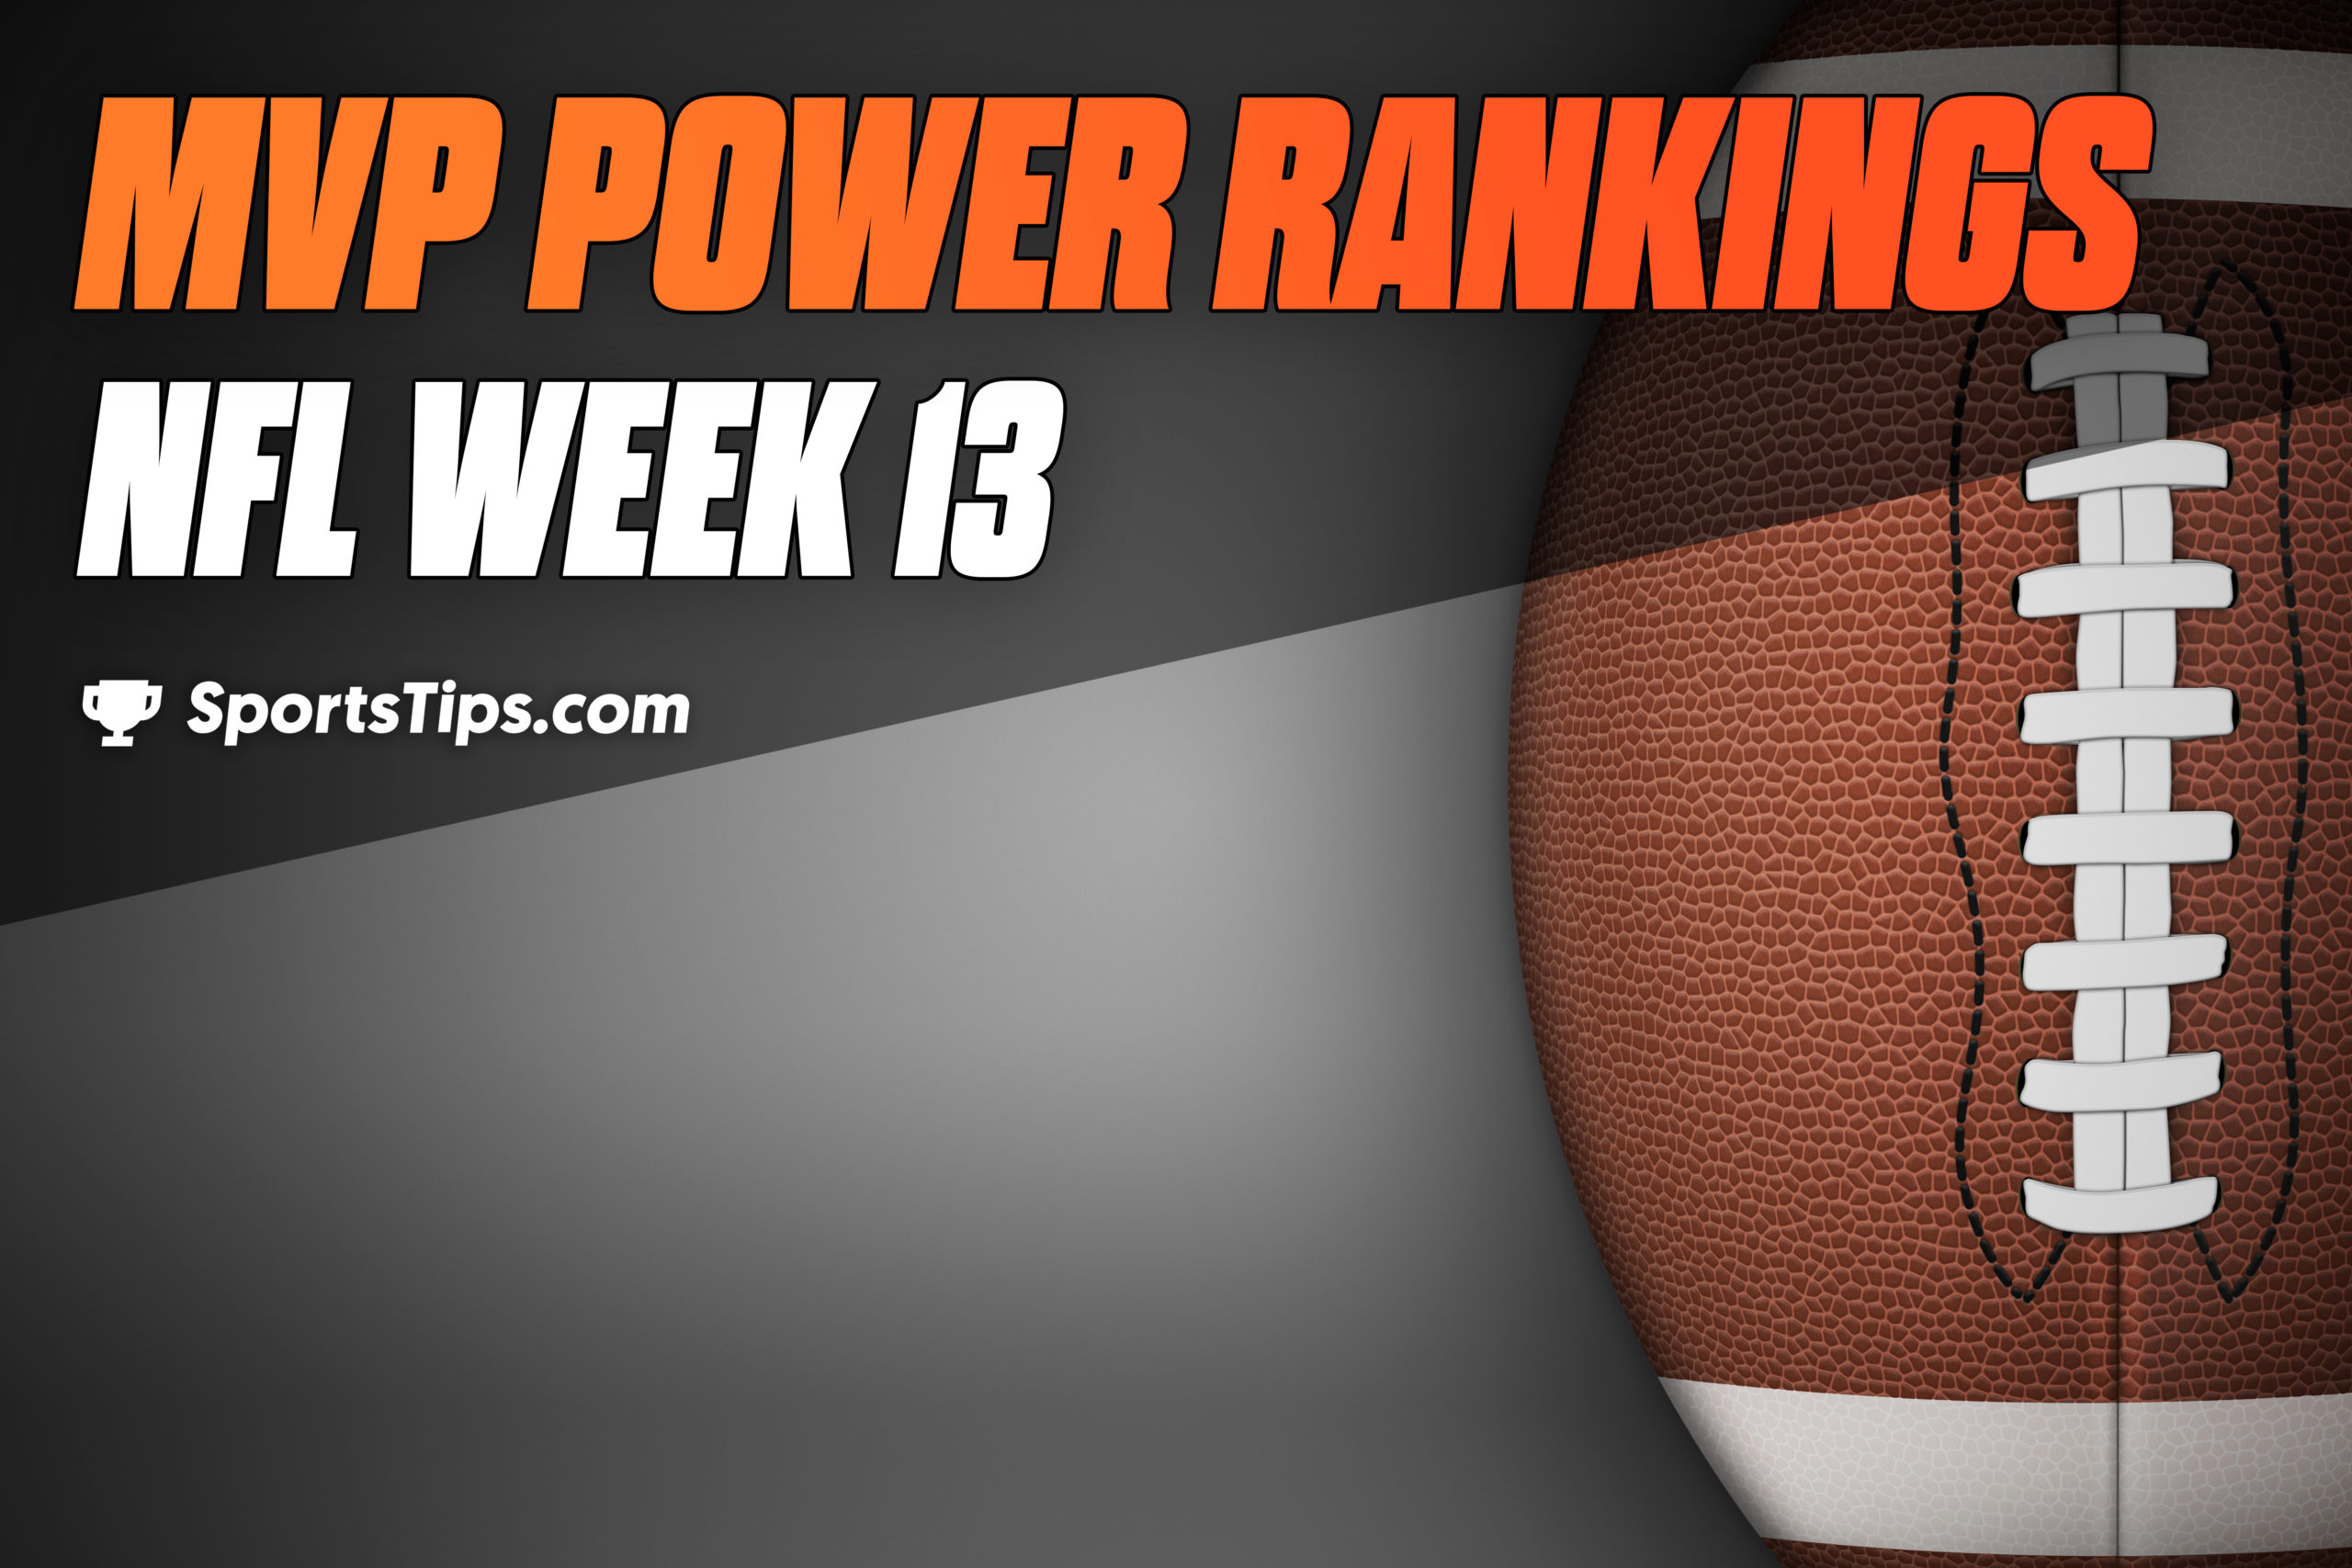 SportsTips' NFL MVP Power Rankings: Week 13